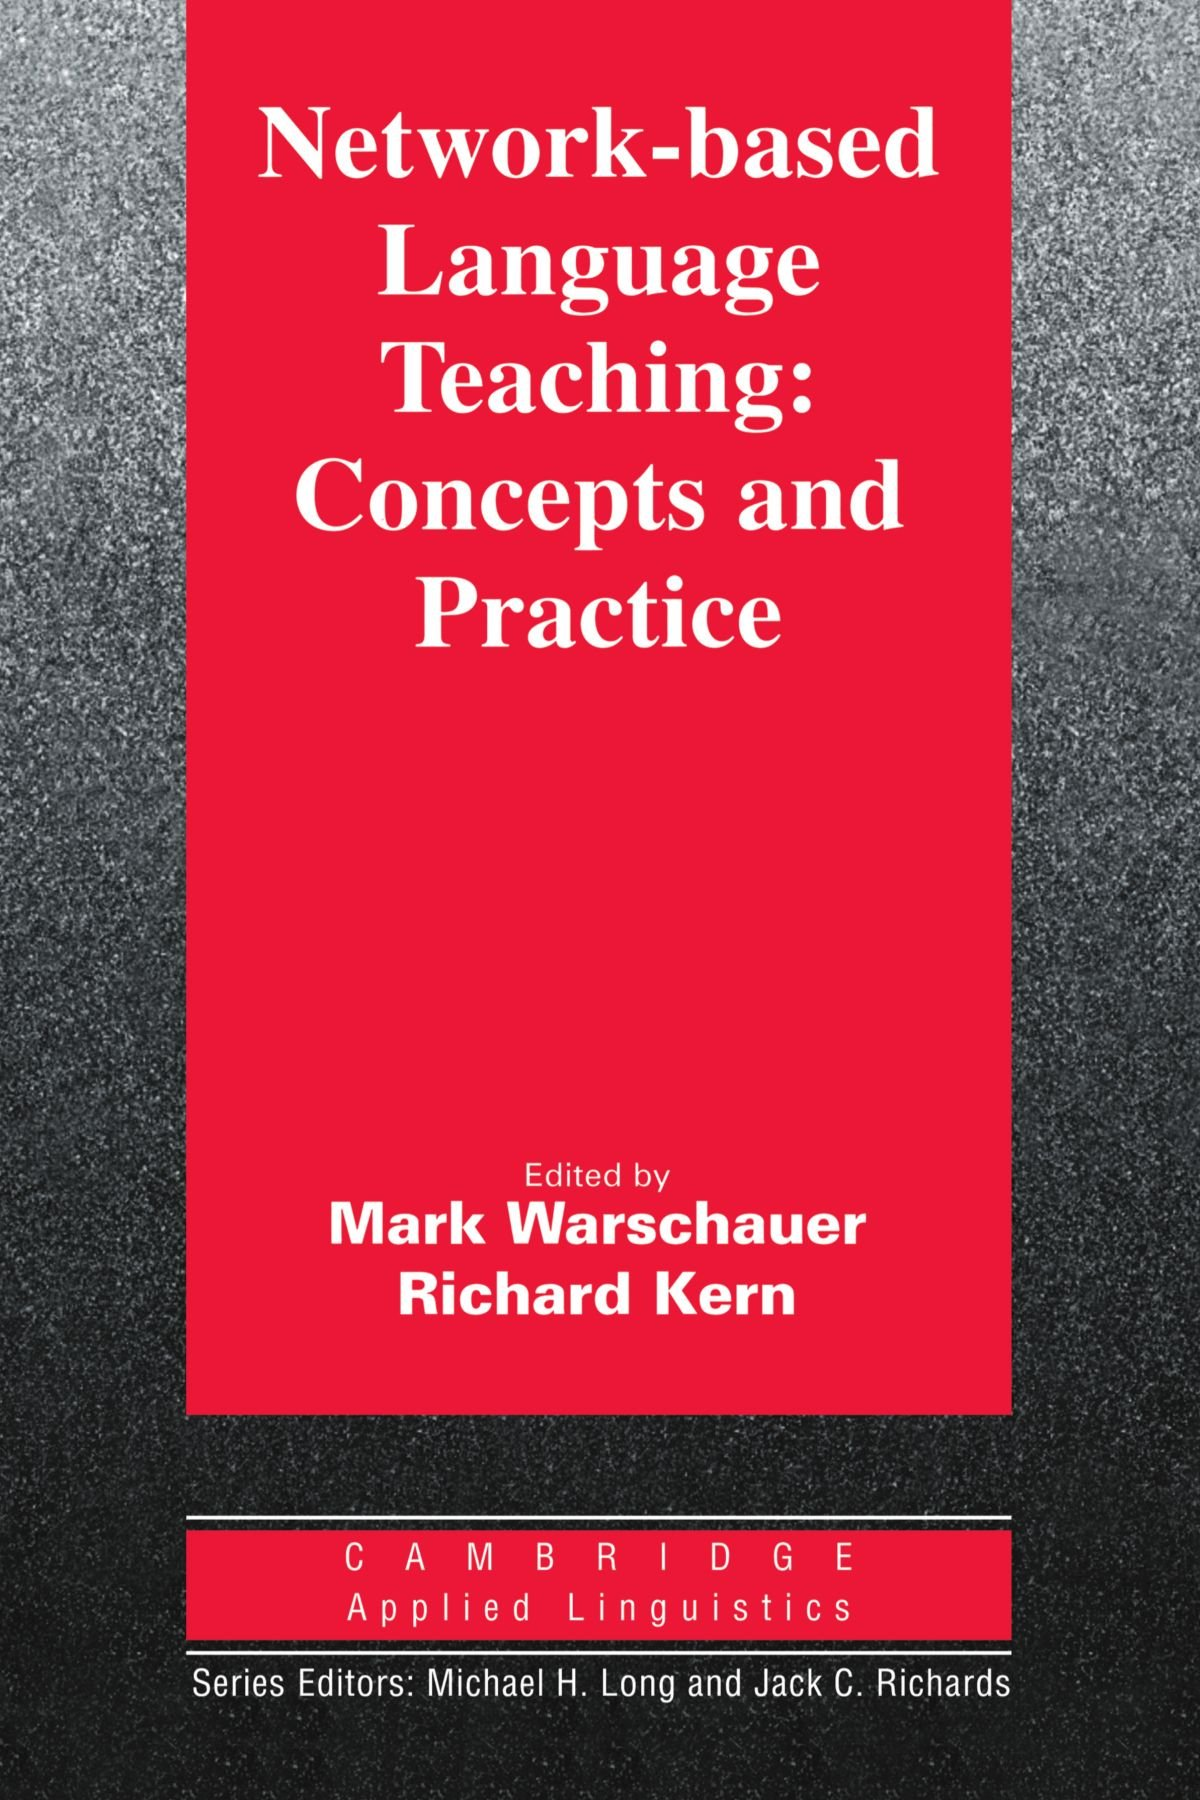 Network-based Language Teaching: Concepts and Practice (Cambridge Applied Linguistics) by Brand: Cambridge University Press